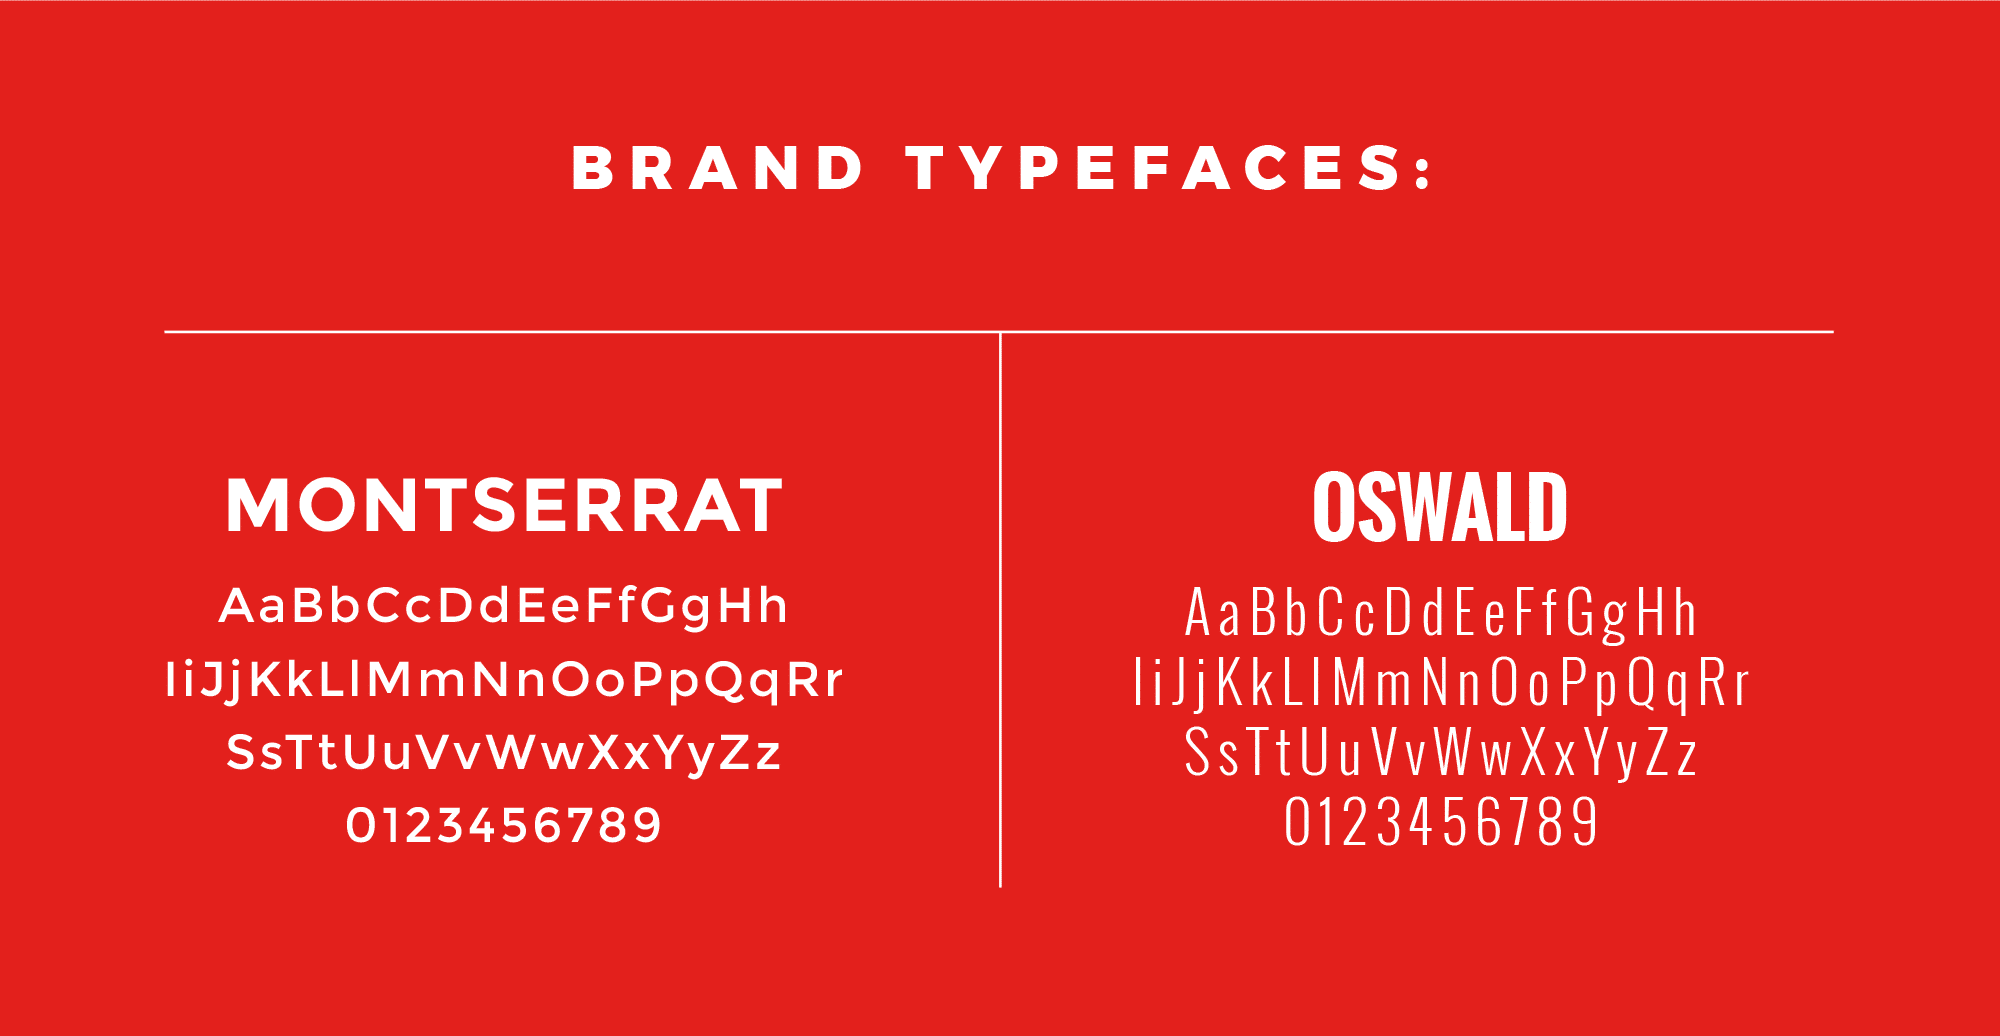 AS brand typefaces